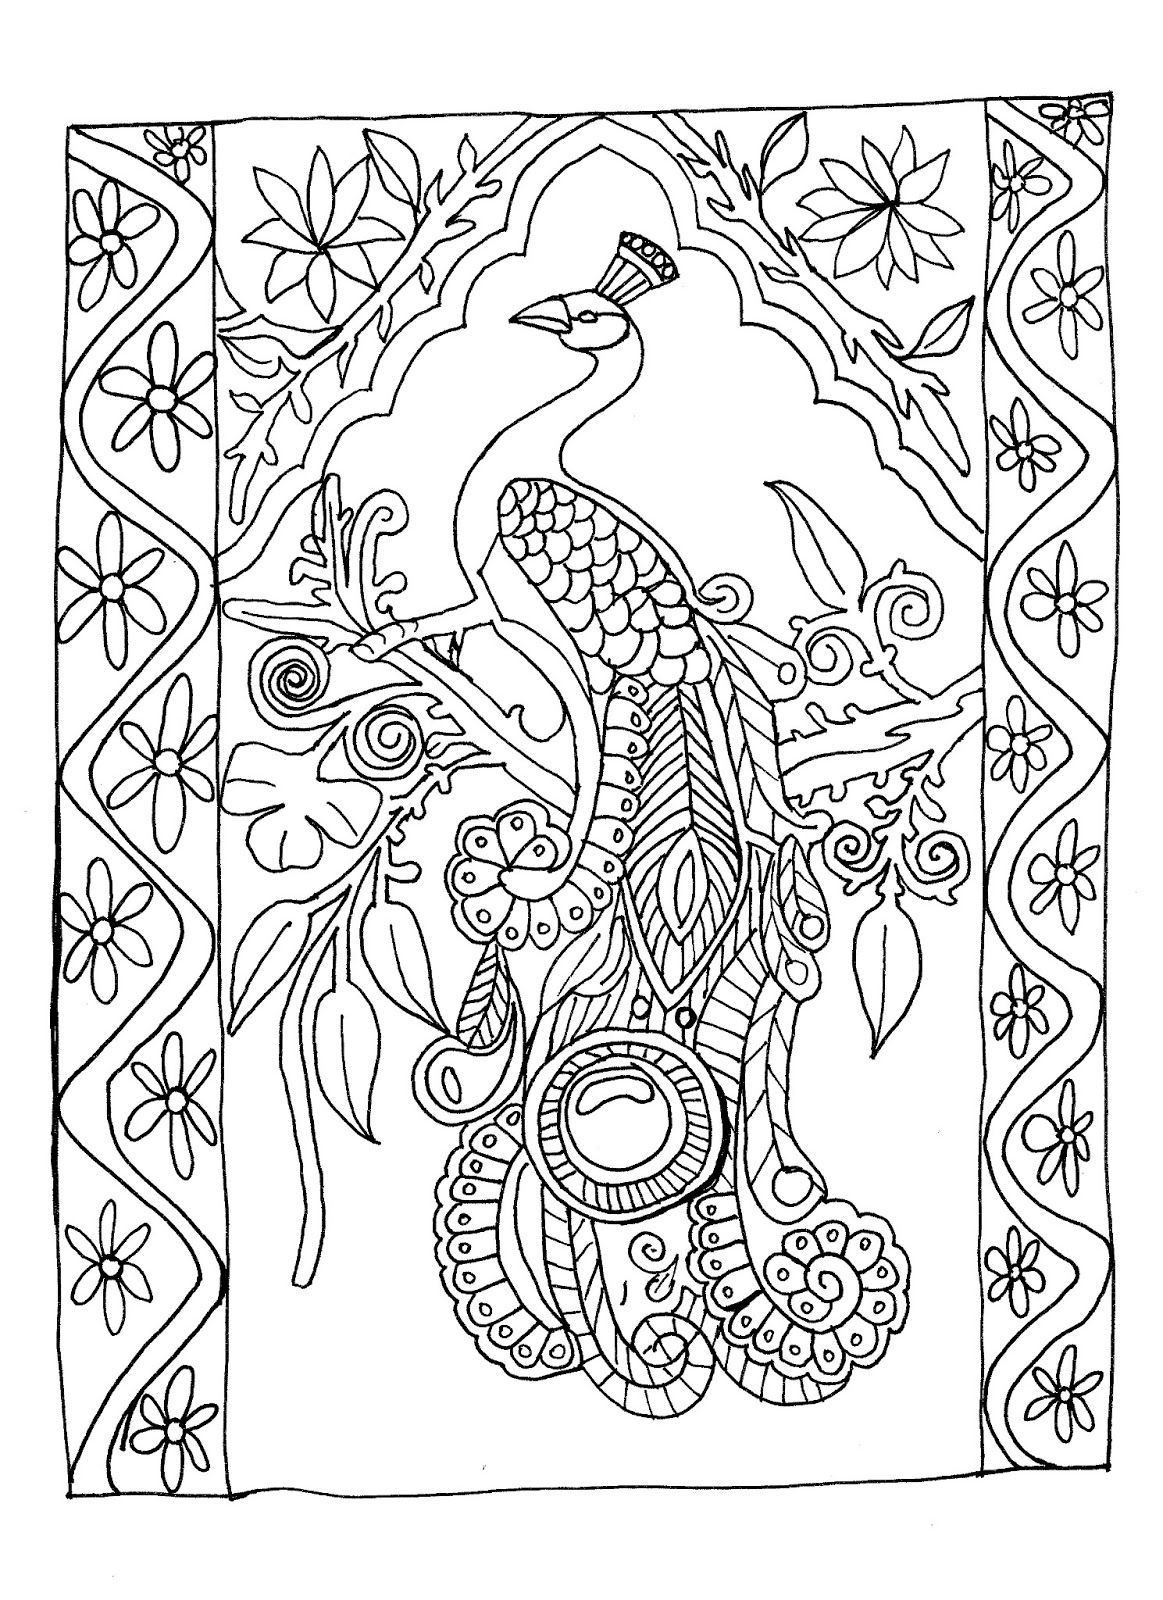 Coloring pages of peacocks - Peacocks Coloring Pages